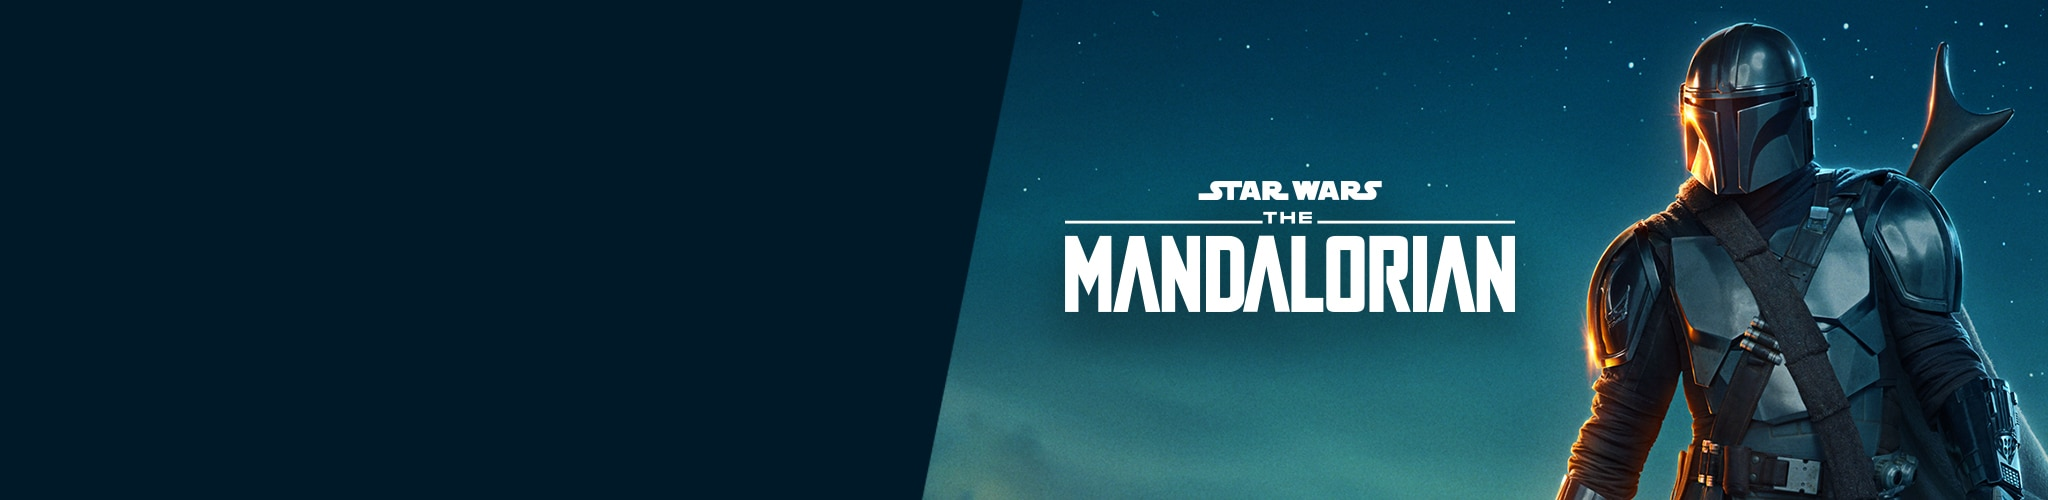 The Mandalorian - Season Two banner